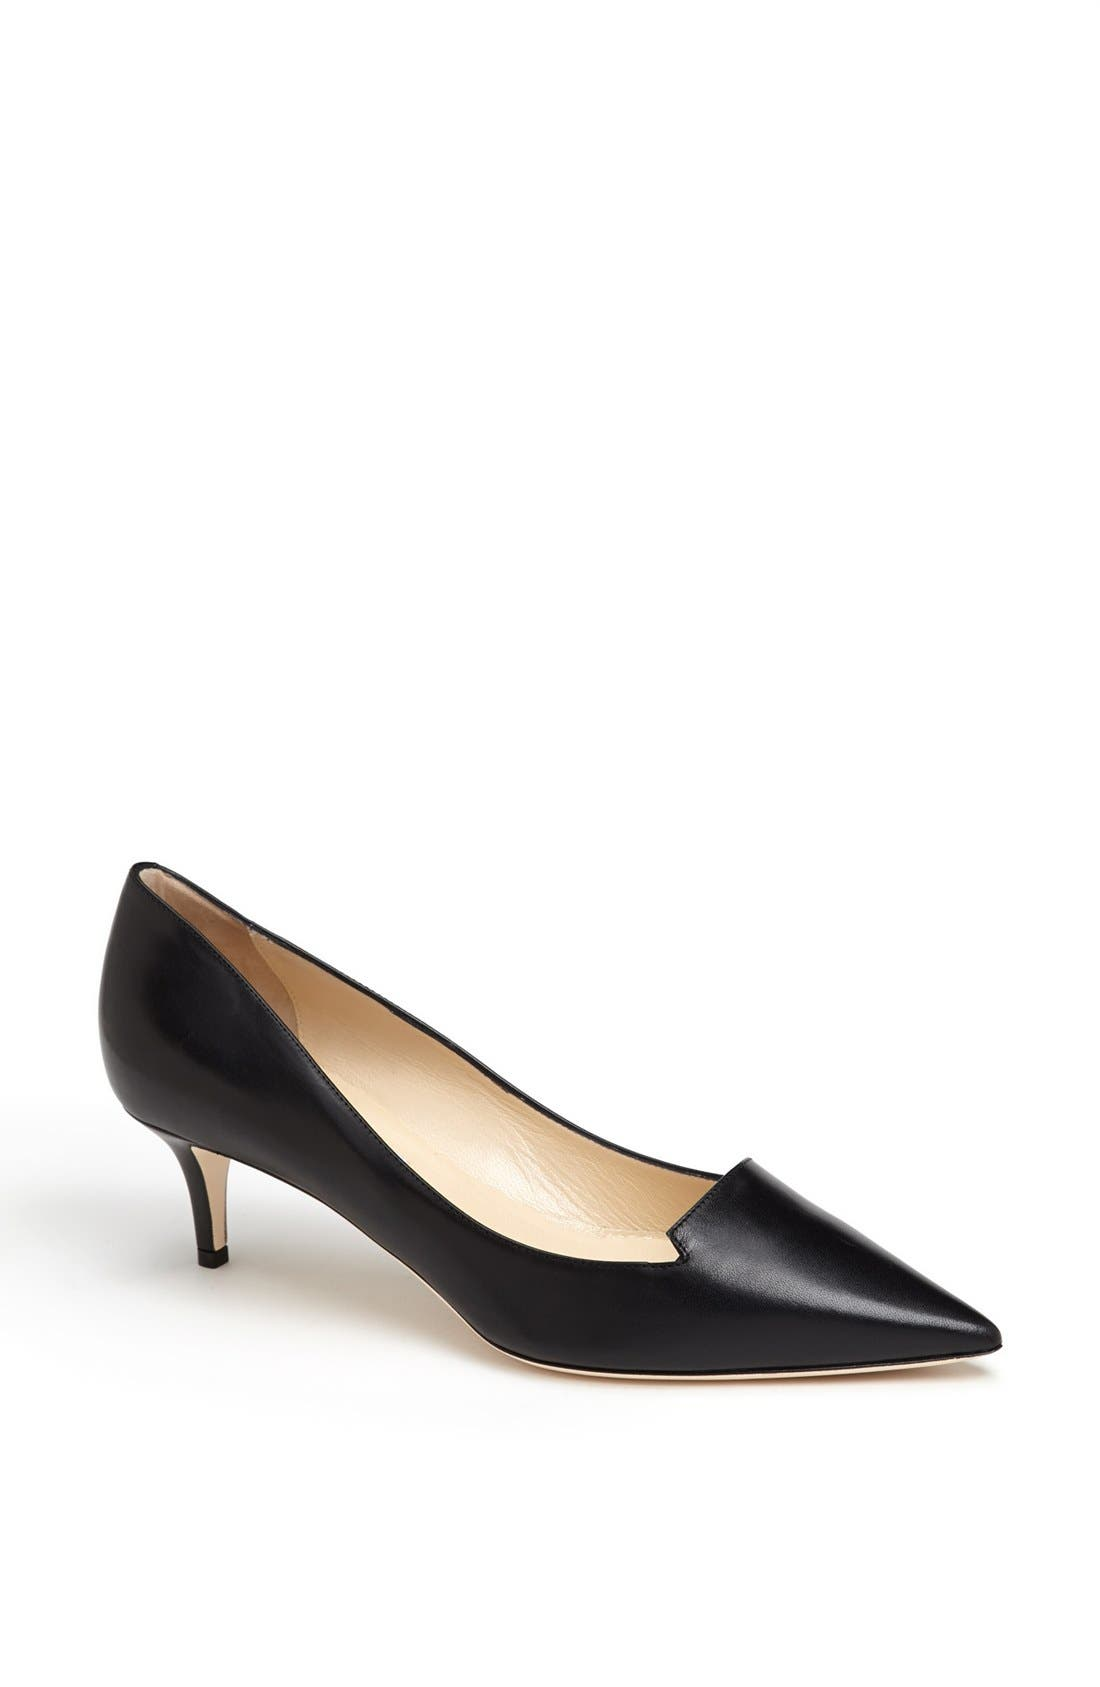 Alternate Image 1 Selected - Jimmy Choo 'Allure' Pump (Women)